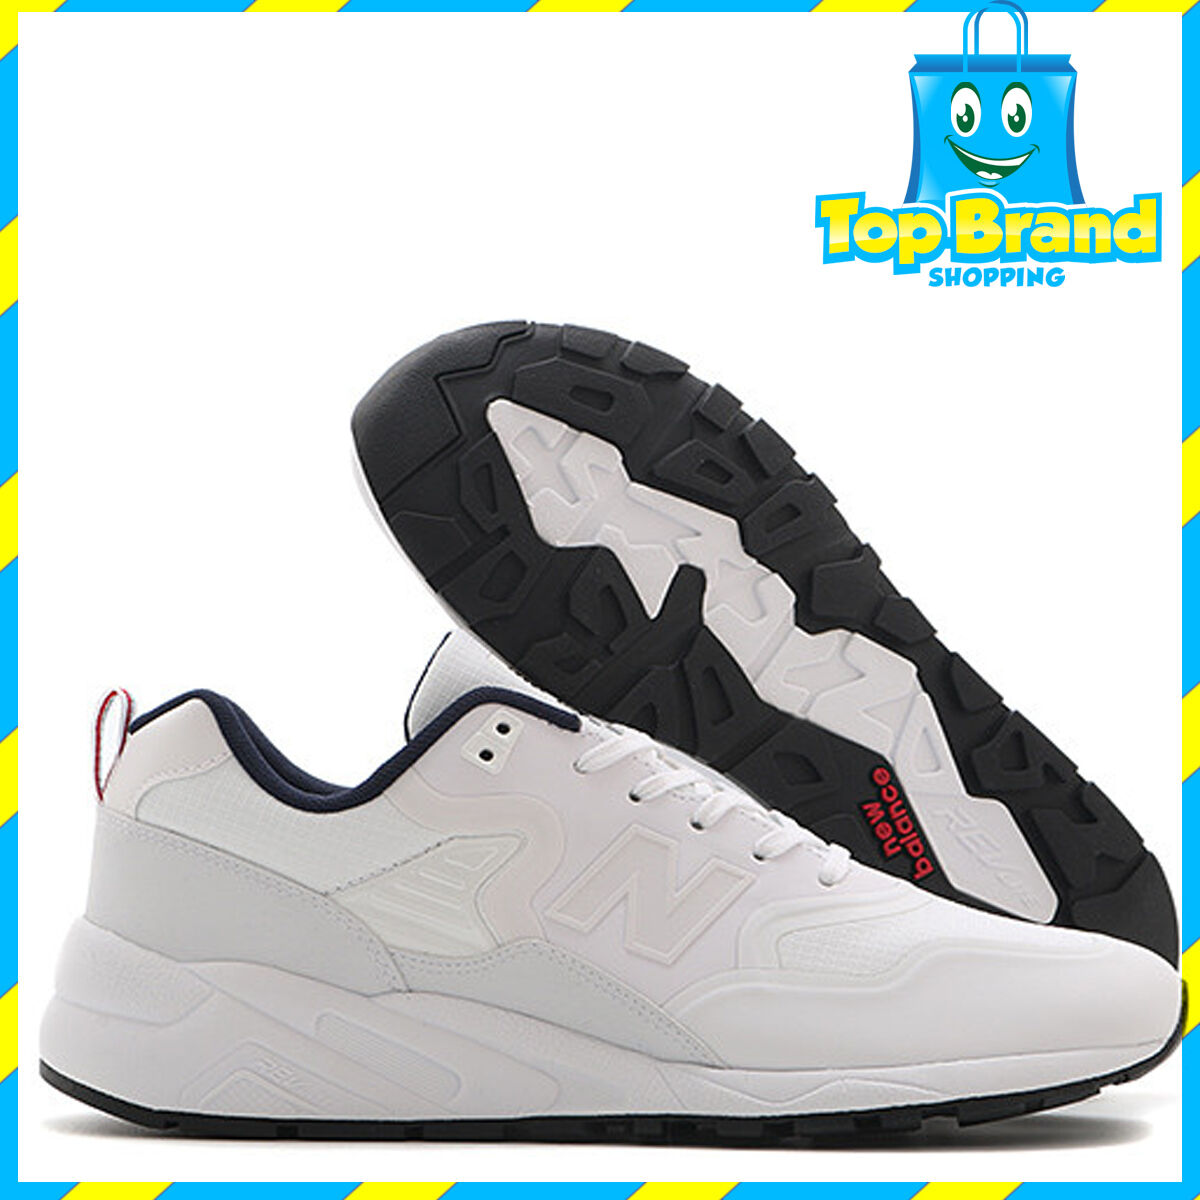 New Balance Mens Classic Sneakers MRT580TW Rare Lifestyle D width